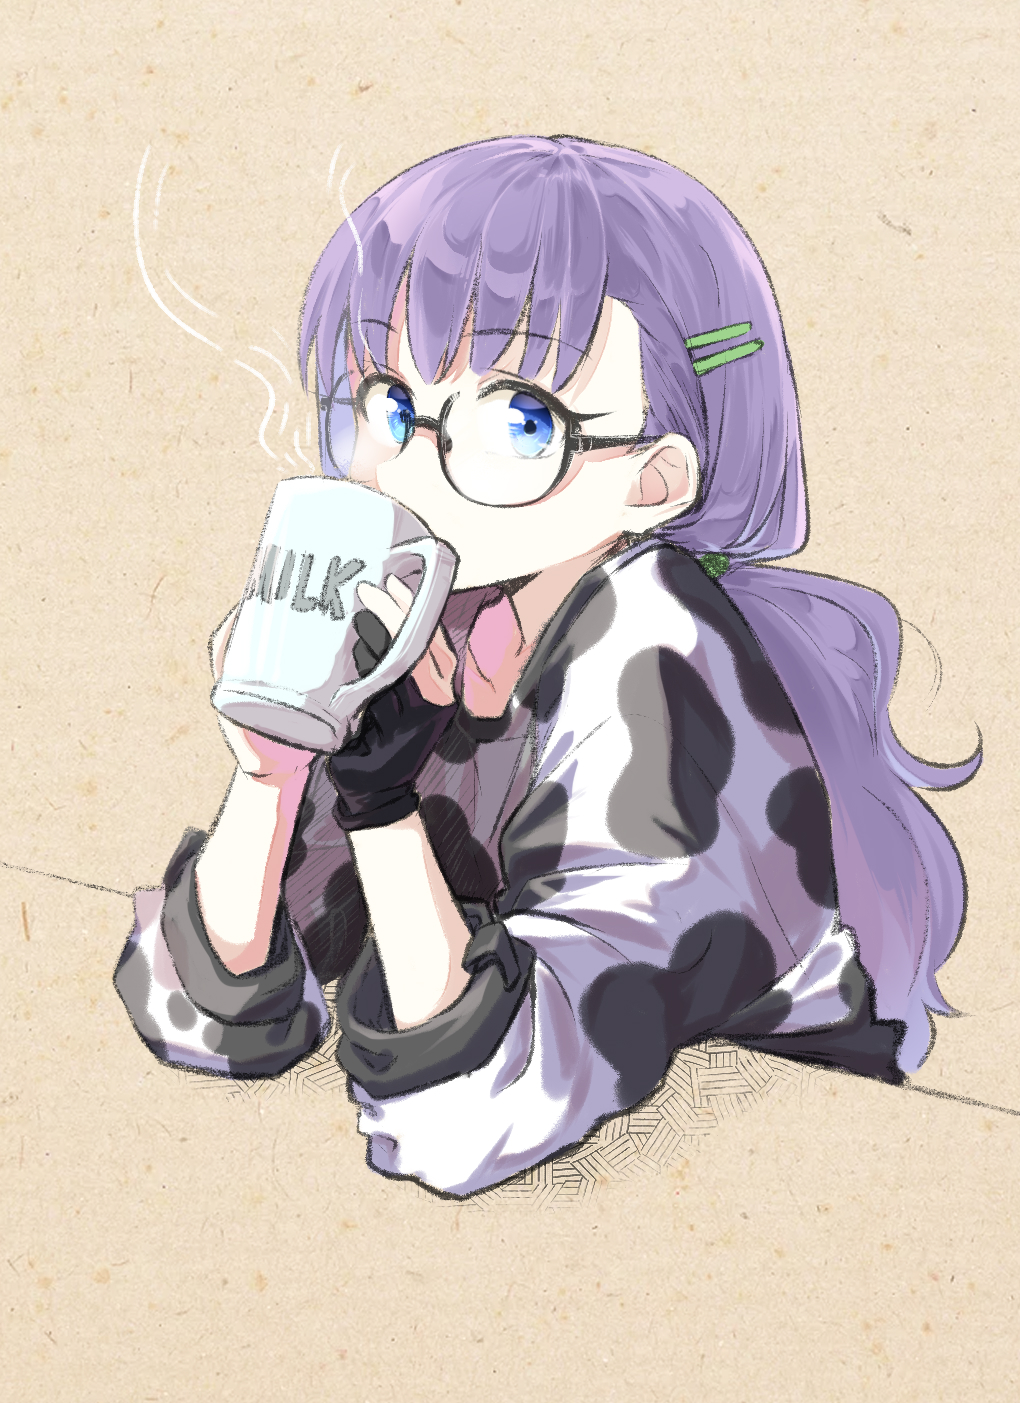 1girl animal_print bangs black_gloves blue_eyes breasts coffeekite contemporary cow_print cup drinking fate/extra fate/extra_ccc fate_(series) glasses gloves hair_ornament hairclip highres long_hair long_sleeves looking_at_viewer meltryllis mug partially_fingerless_gloves ponytail purple_hair shirt small_breasts very_long_hair white_shirt